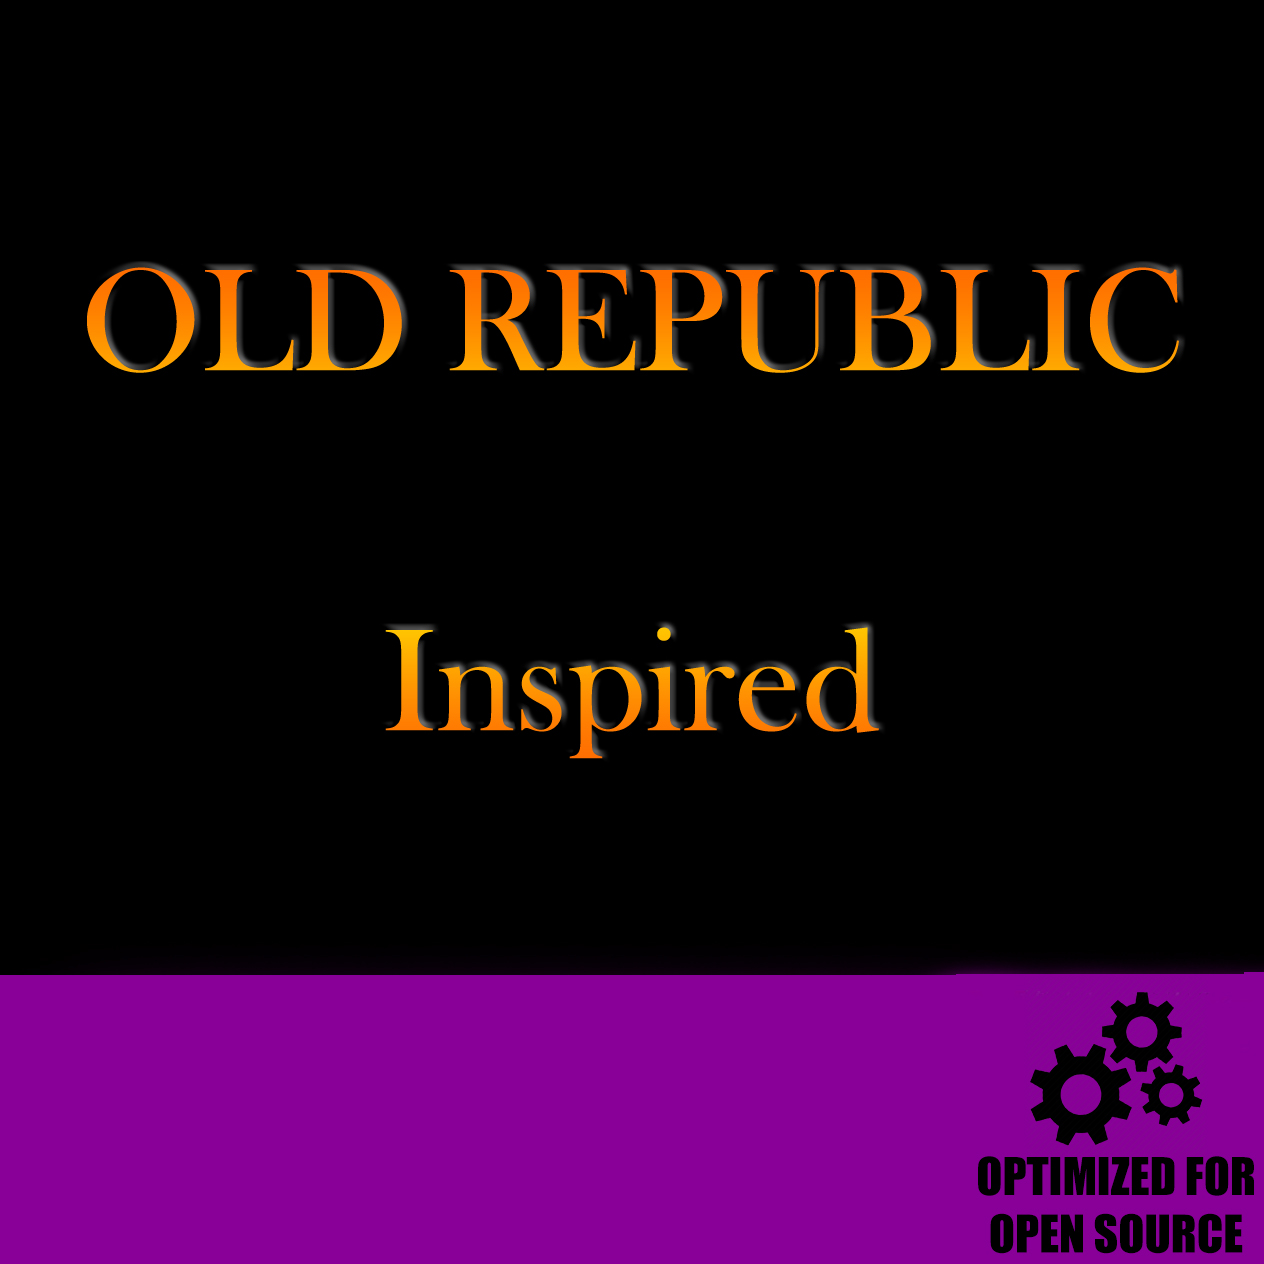 Old Republic Inspired for Open Source